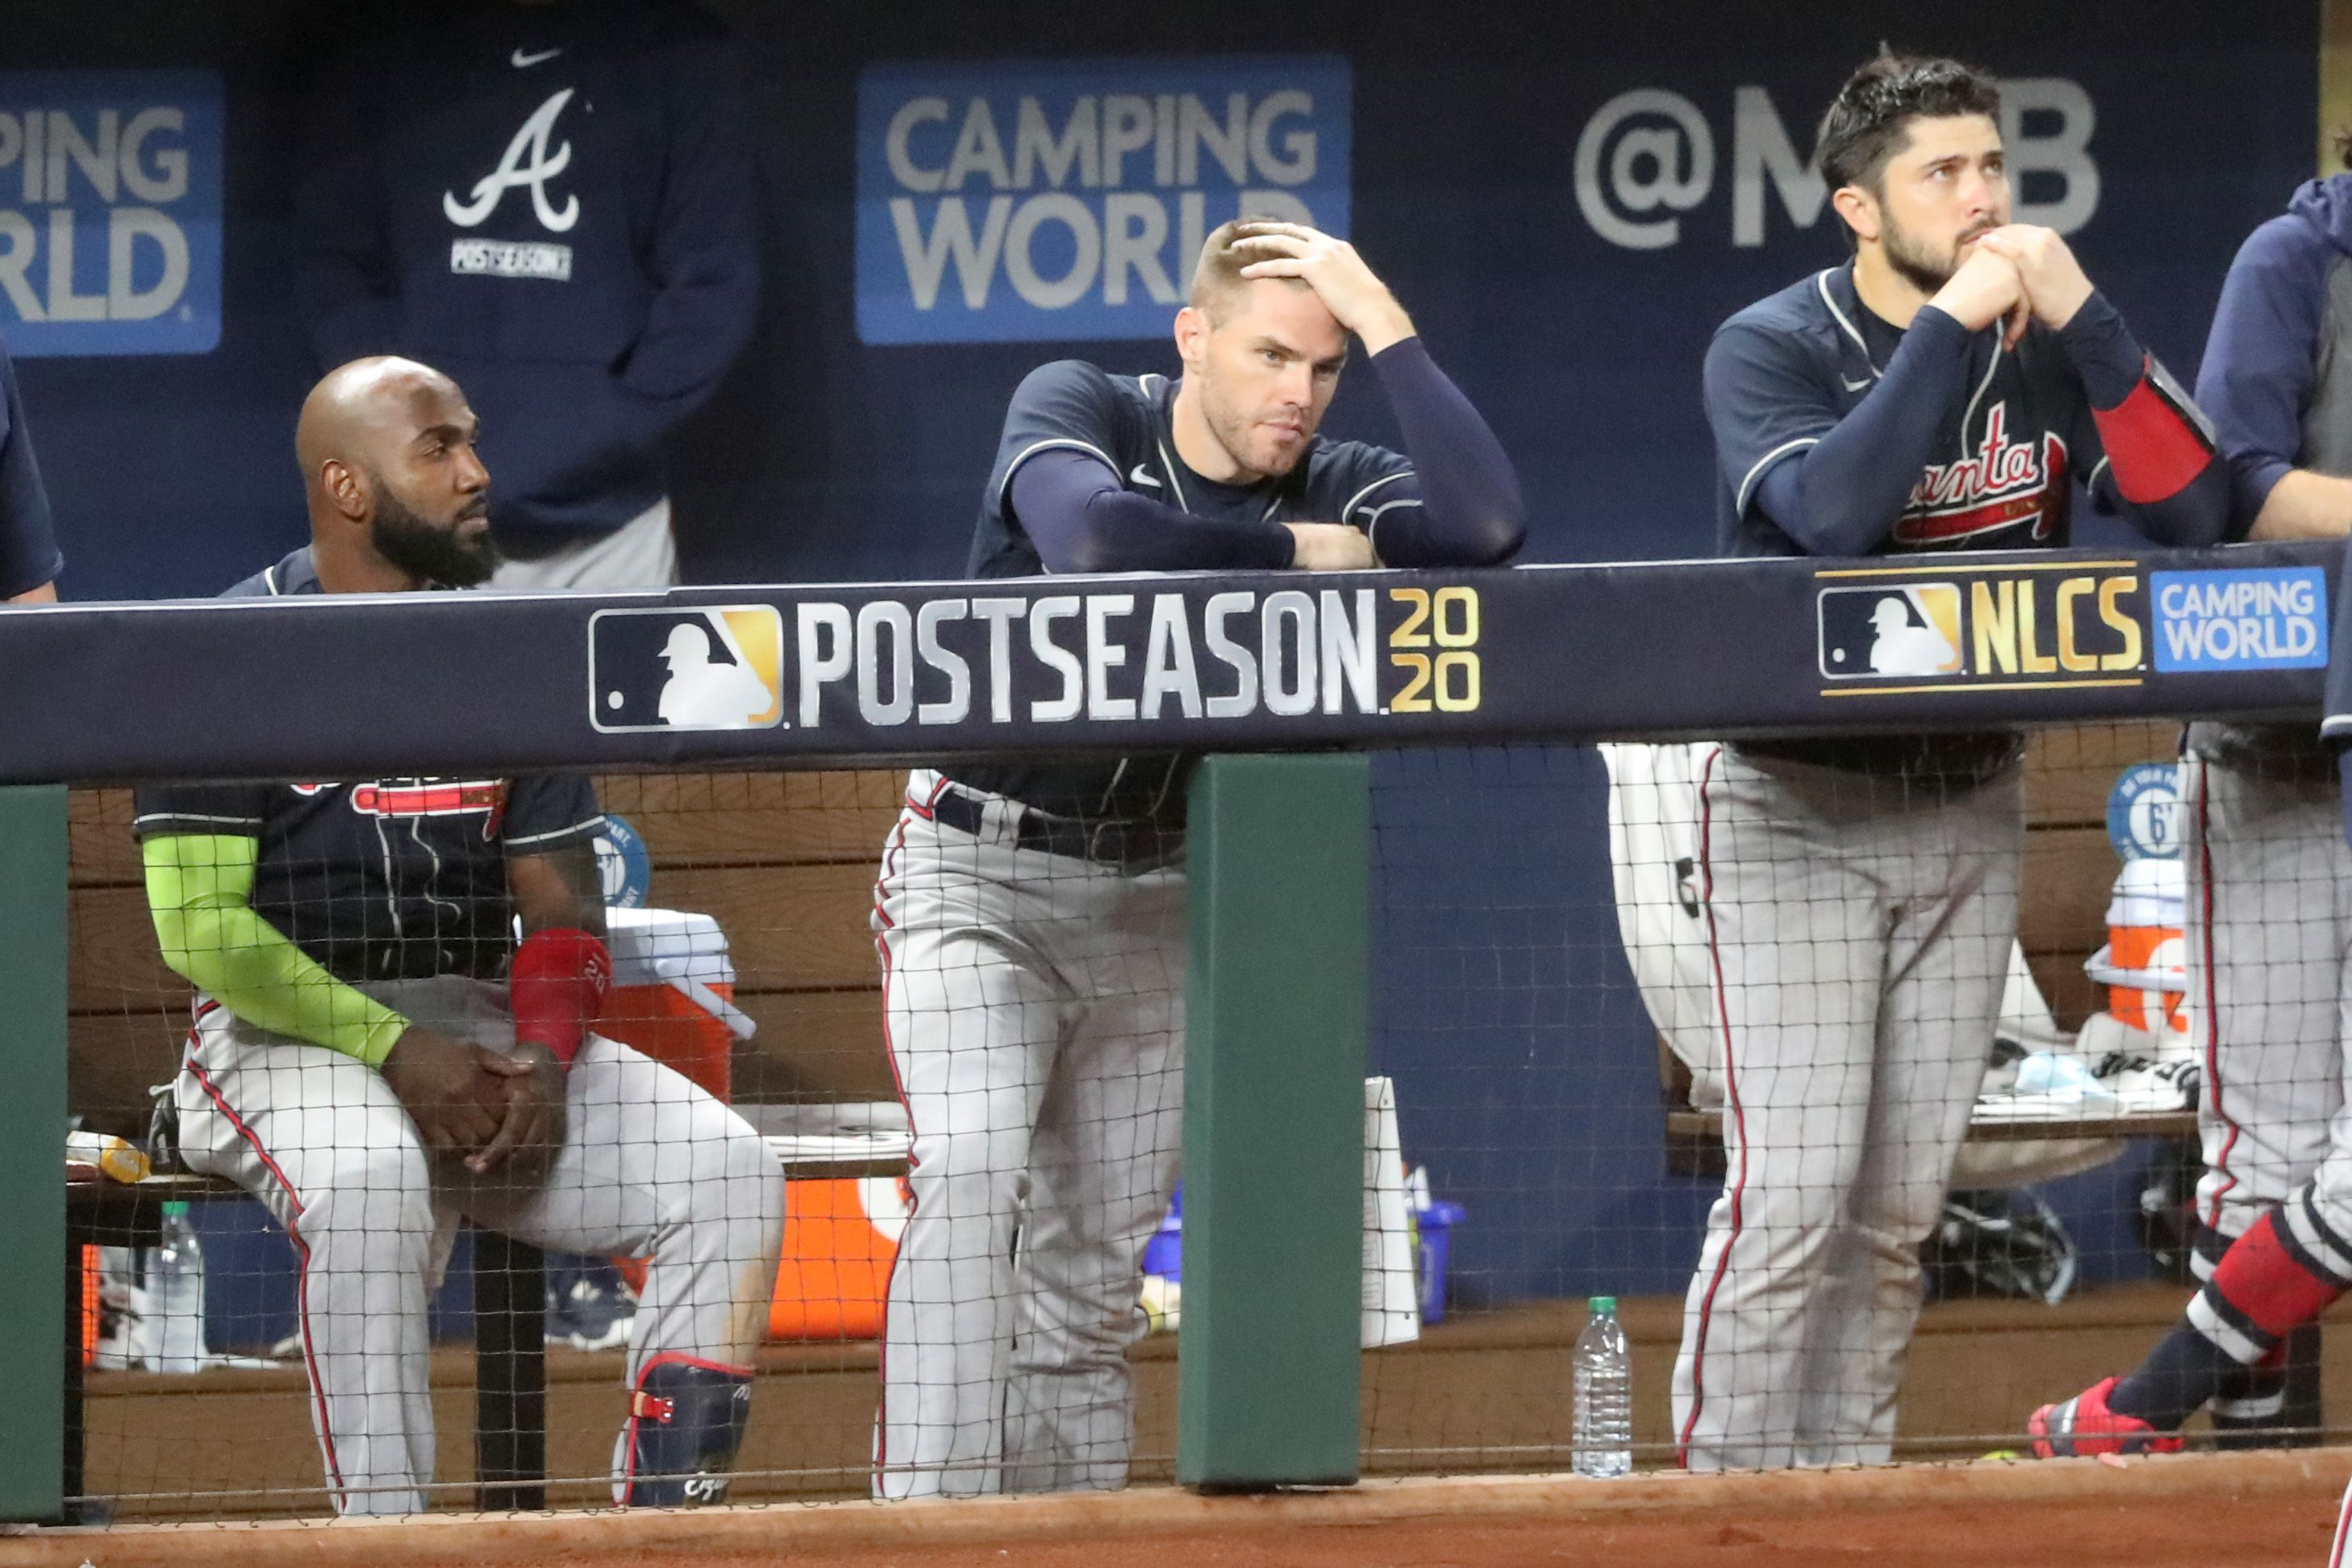 Braves players (from left) Marcell Ozuna, Freddie Freeman and Travis d'Arnaud watch the final outs of Game 7 of the National League Championship Series against the Los Angeles Dodgers Sunday, Oct. 18, 2020, at Globe Life Field in Arlington, Texas. The Dodgers won the game 4-3 and the series 4-3.  (Curtis Compton / Curtis.Compton@ajc.com)